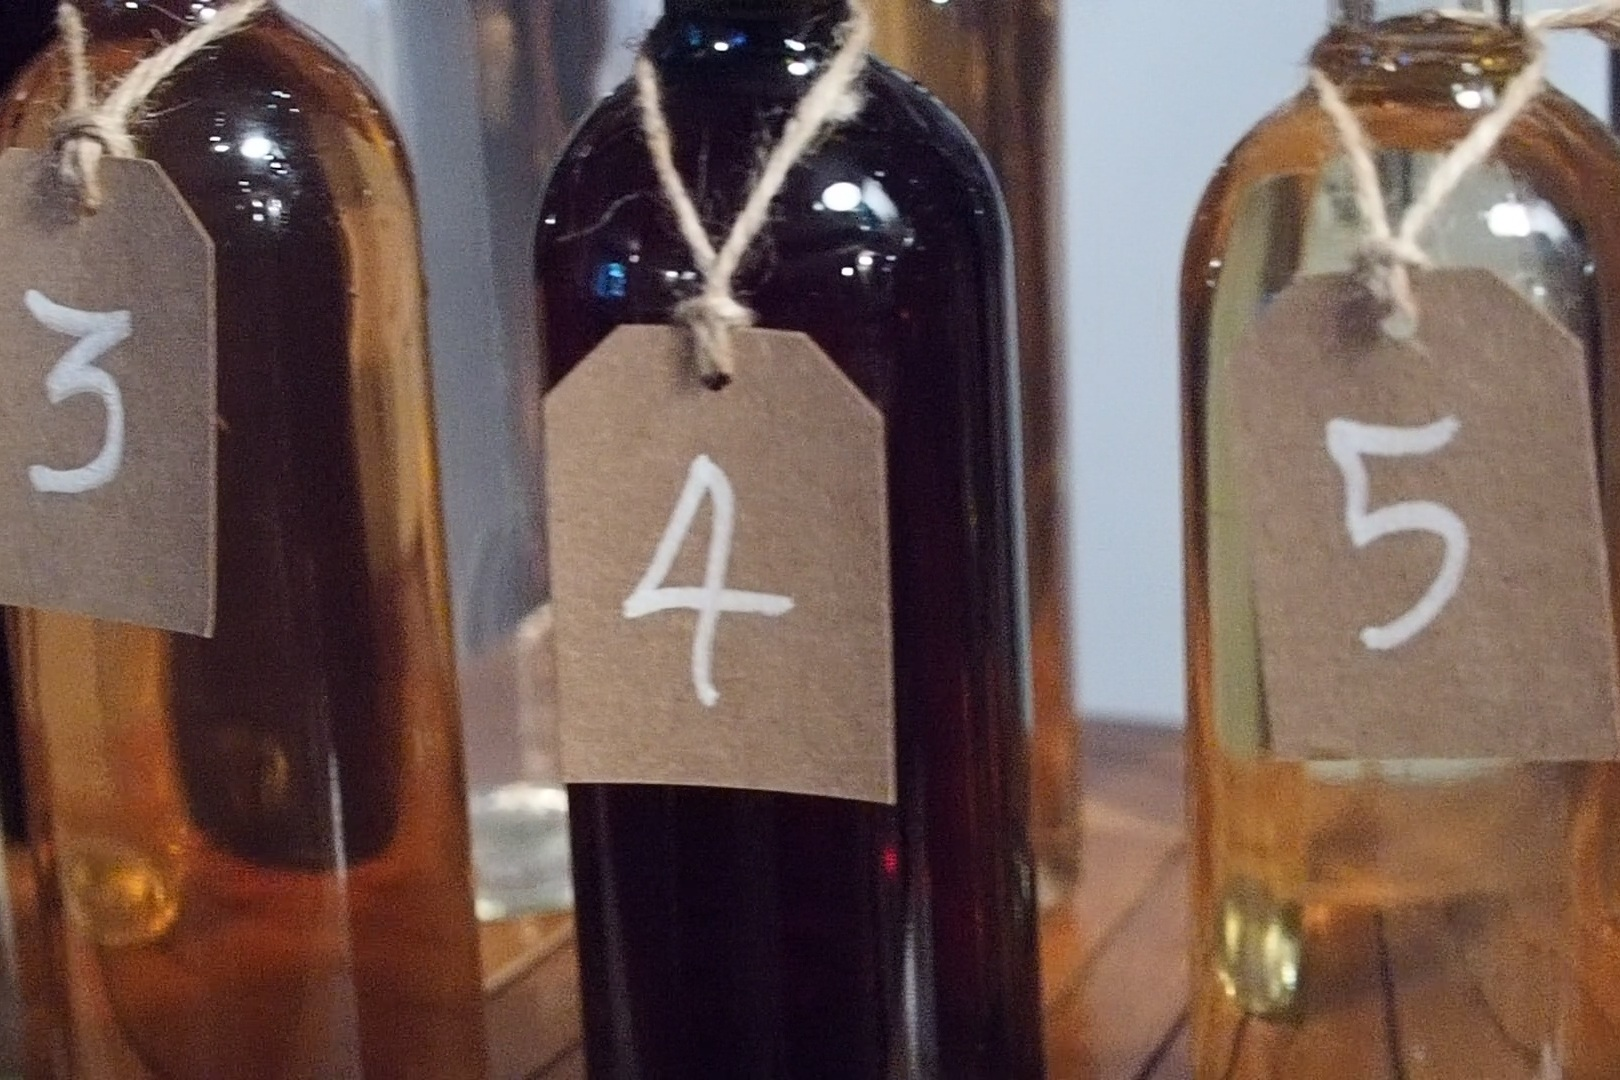 Copy of VQ make great wines from local fruits, leaves, plants & flowers. The session offers wine tasting, a quiz, the history of wines & some insights into wine making